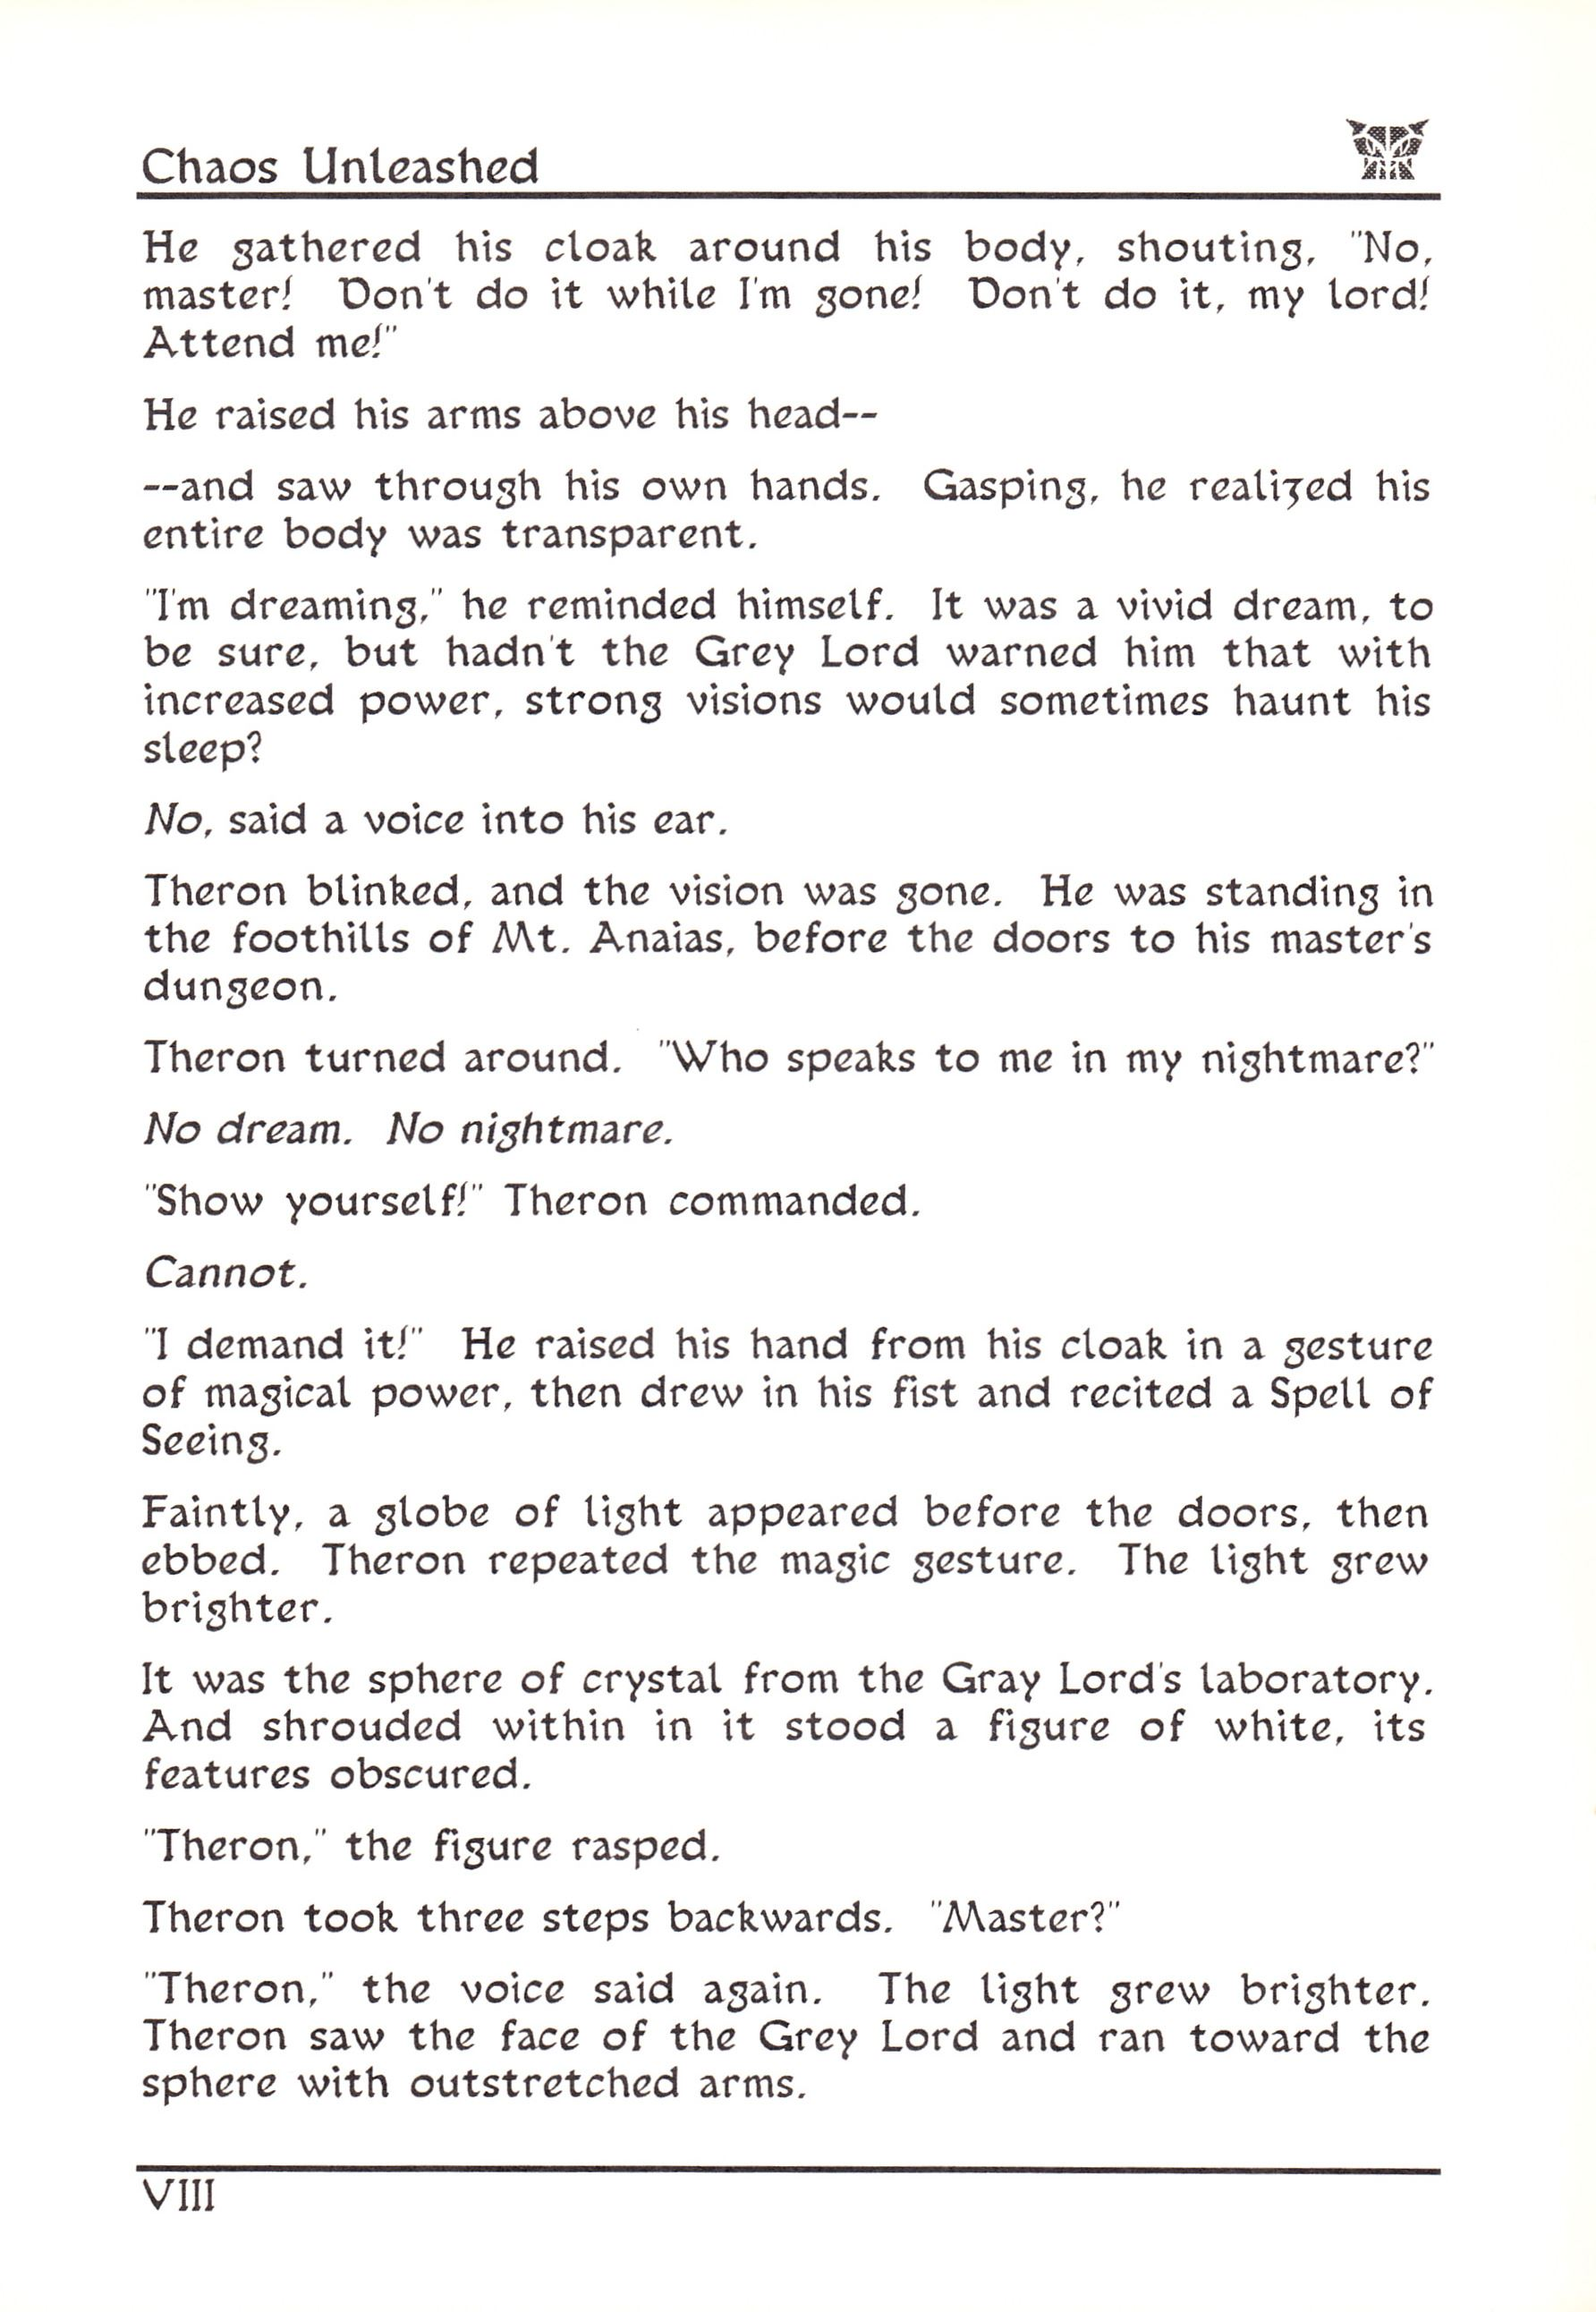 Game - Dungeon Master - US - Atari ST - Early Box - Manual - Page 014 - Scan